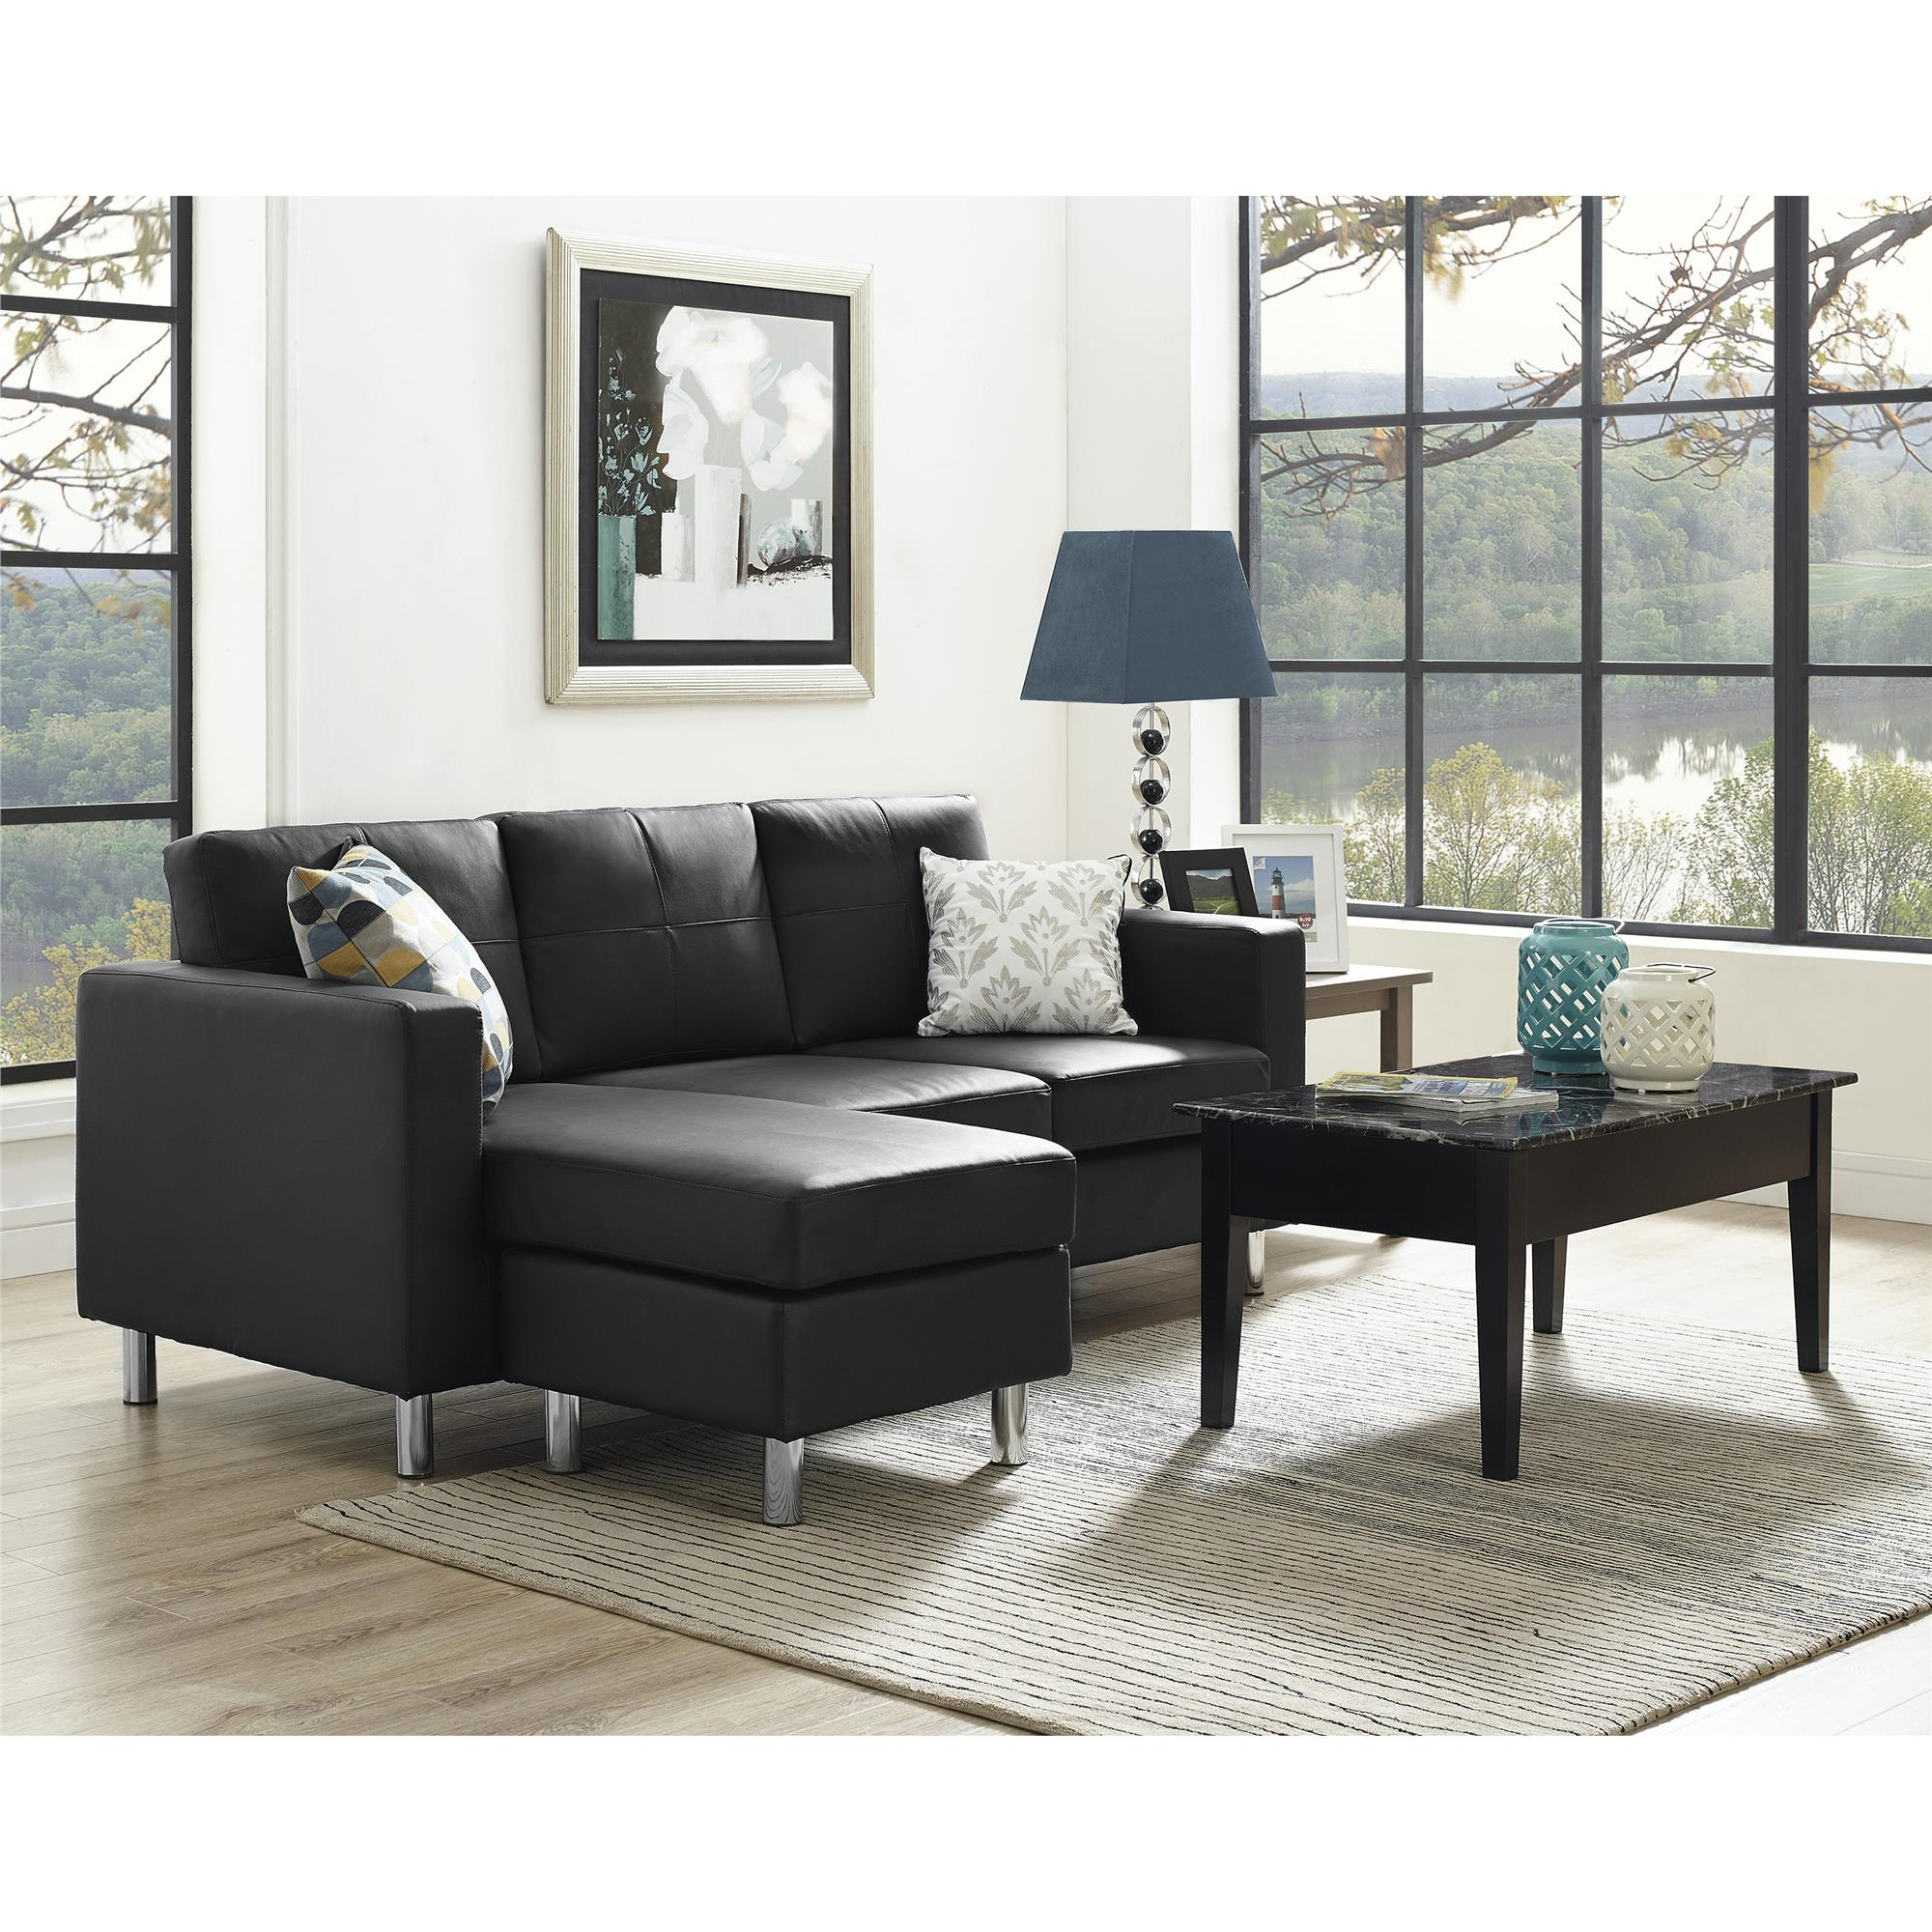 dorel living small spaces configurable sectional sofa multiple colors black